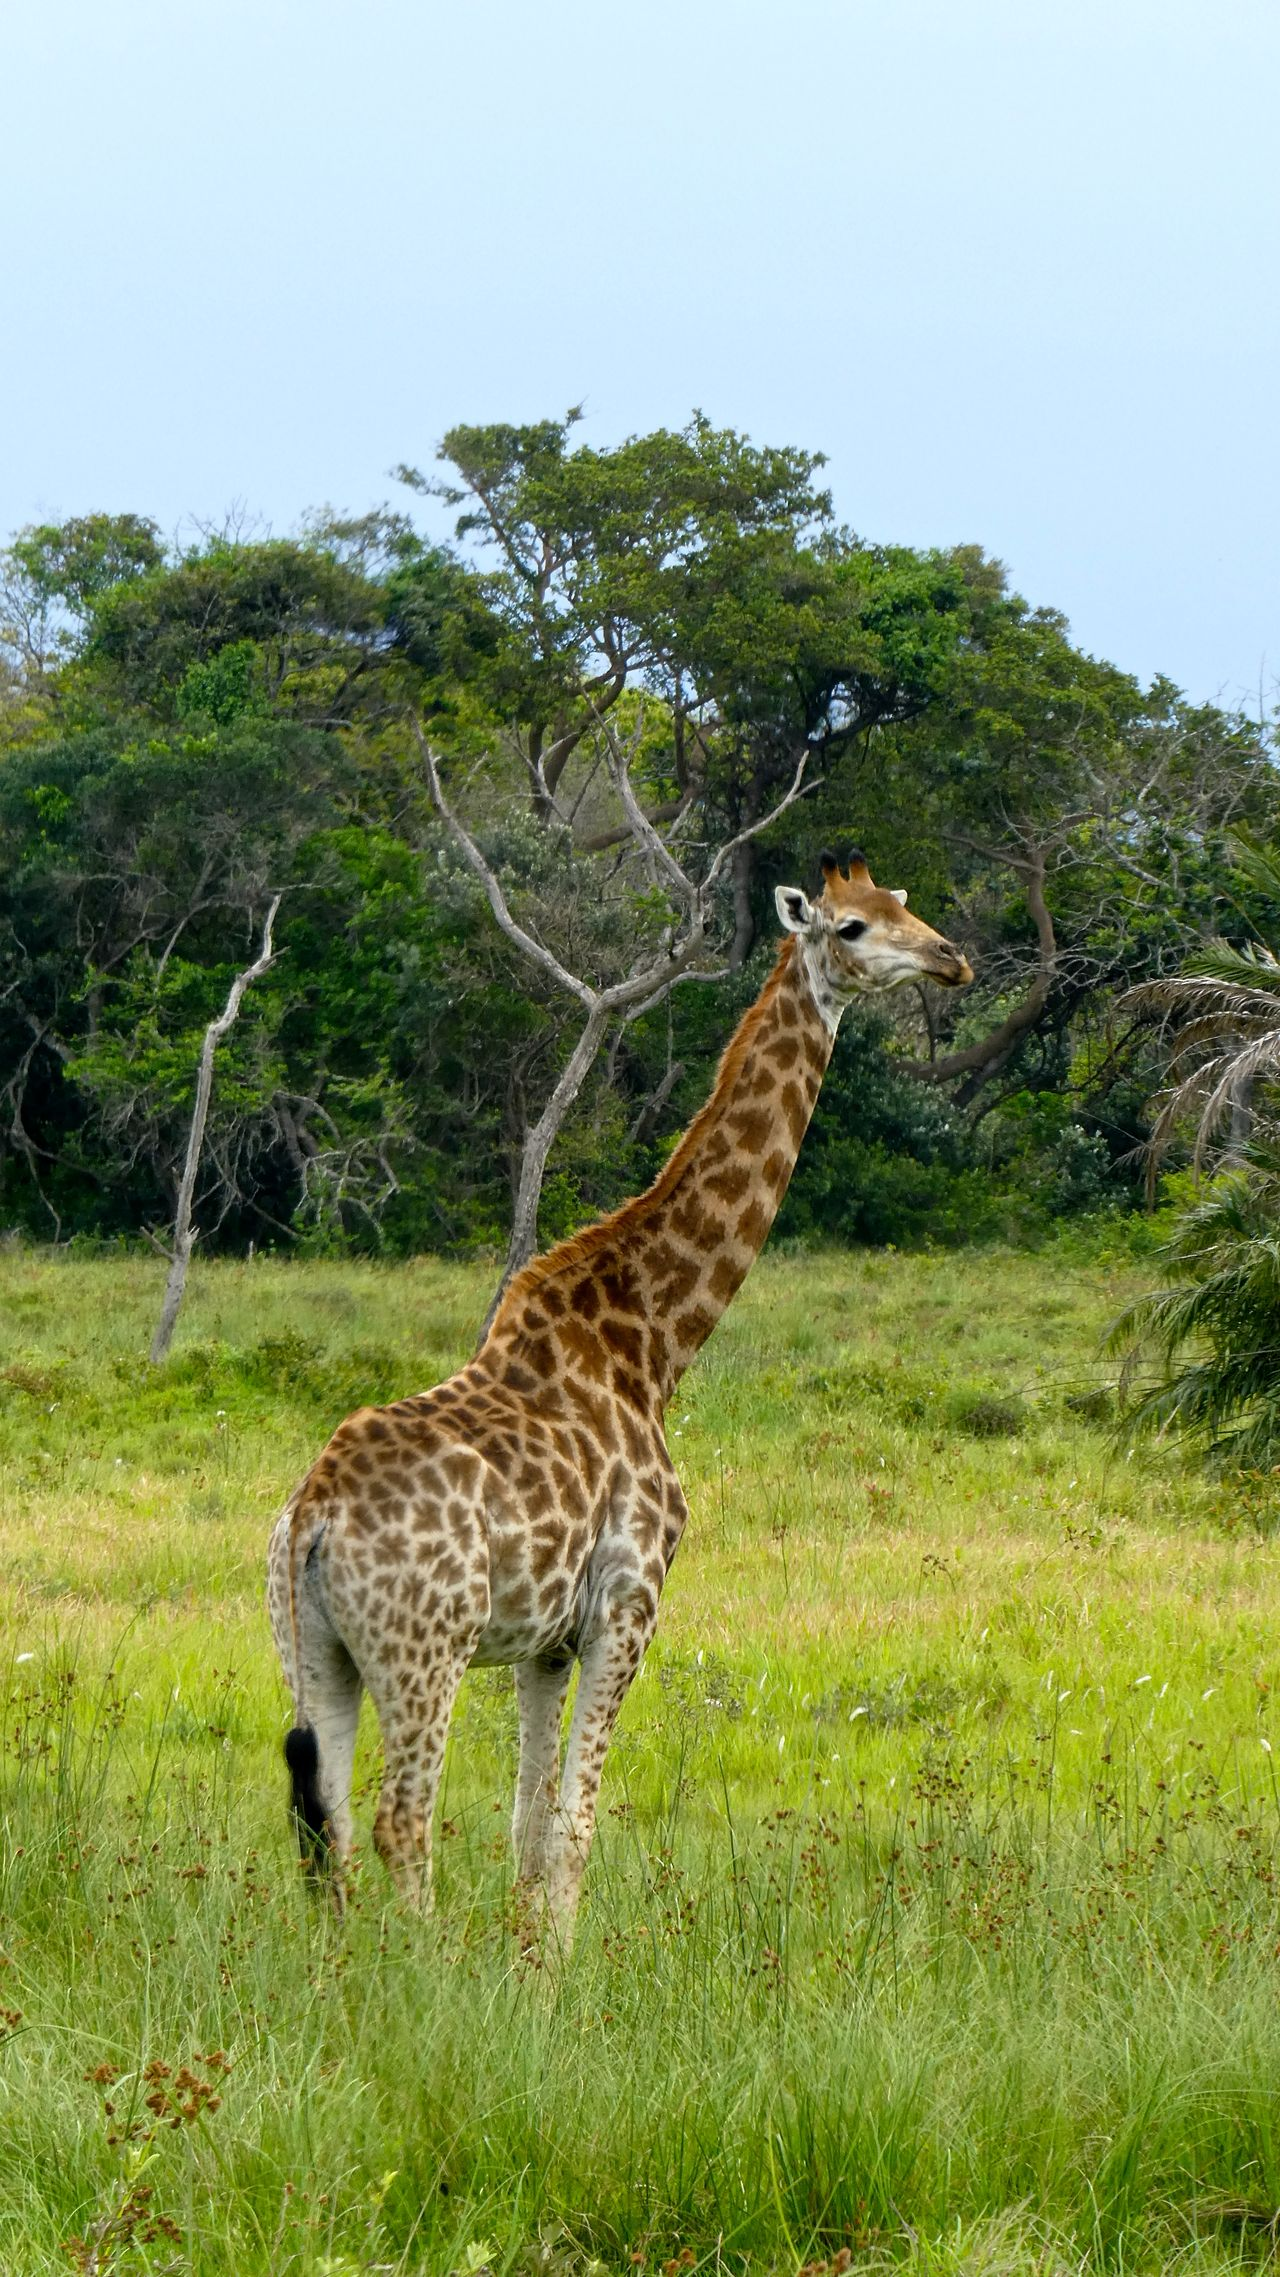 Animal Themes Animal Wildlife Animals In The Wild Day Giraff Giraffe Giraffe Giraffes Giraffe♥ Hluhluwe Mammal Nature No People Outdoors Safari Animals Southafrika St Lucia Wetland Park Südafrika